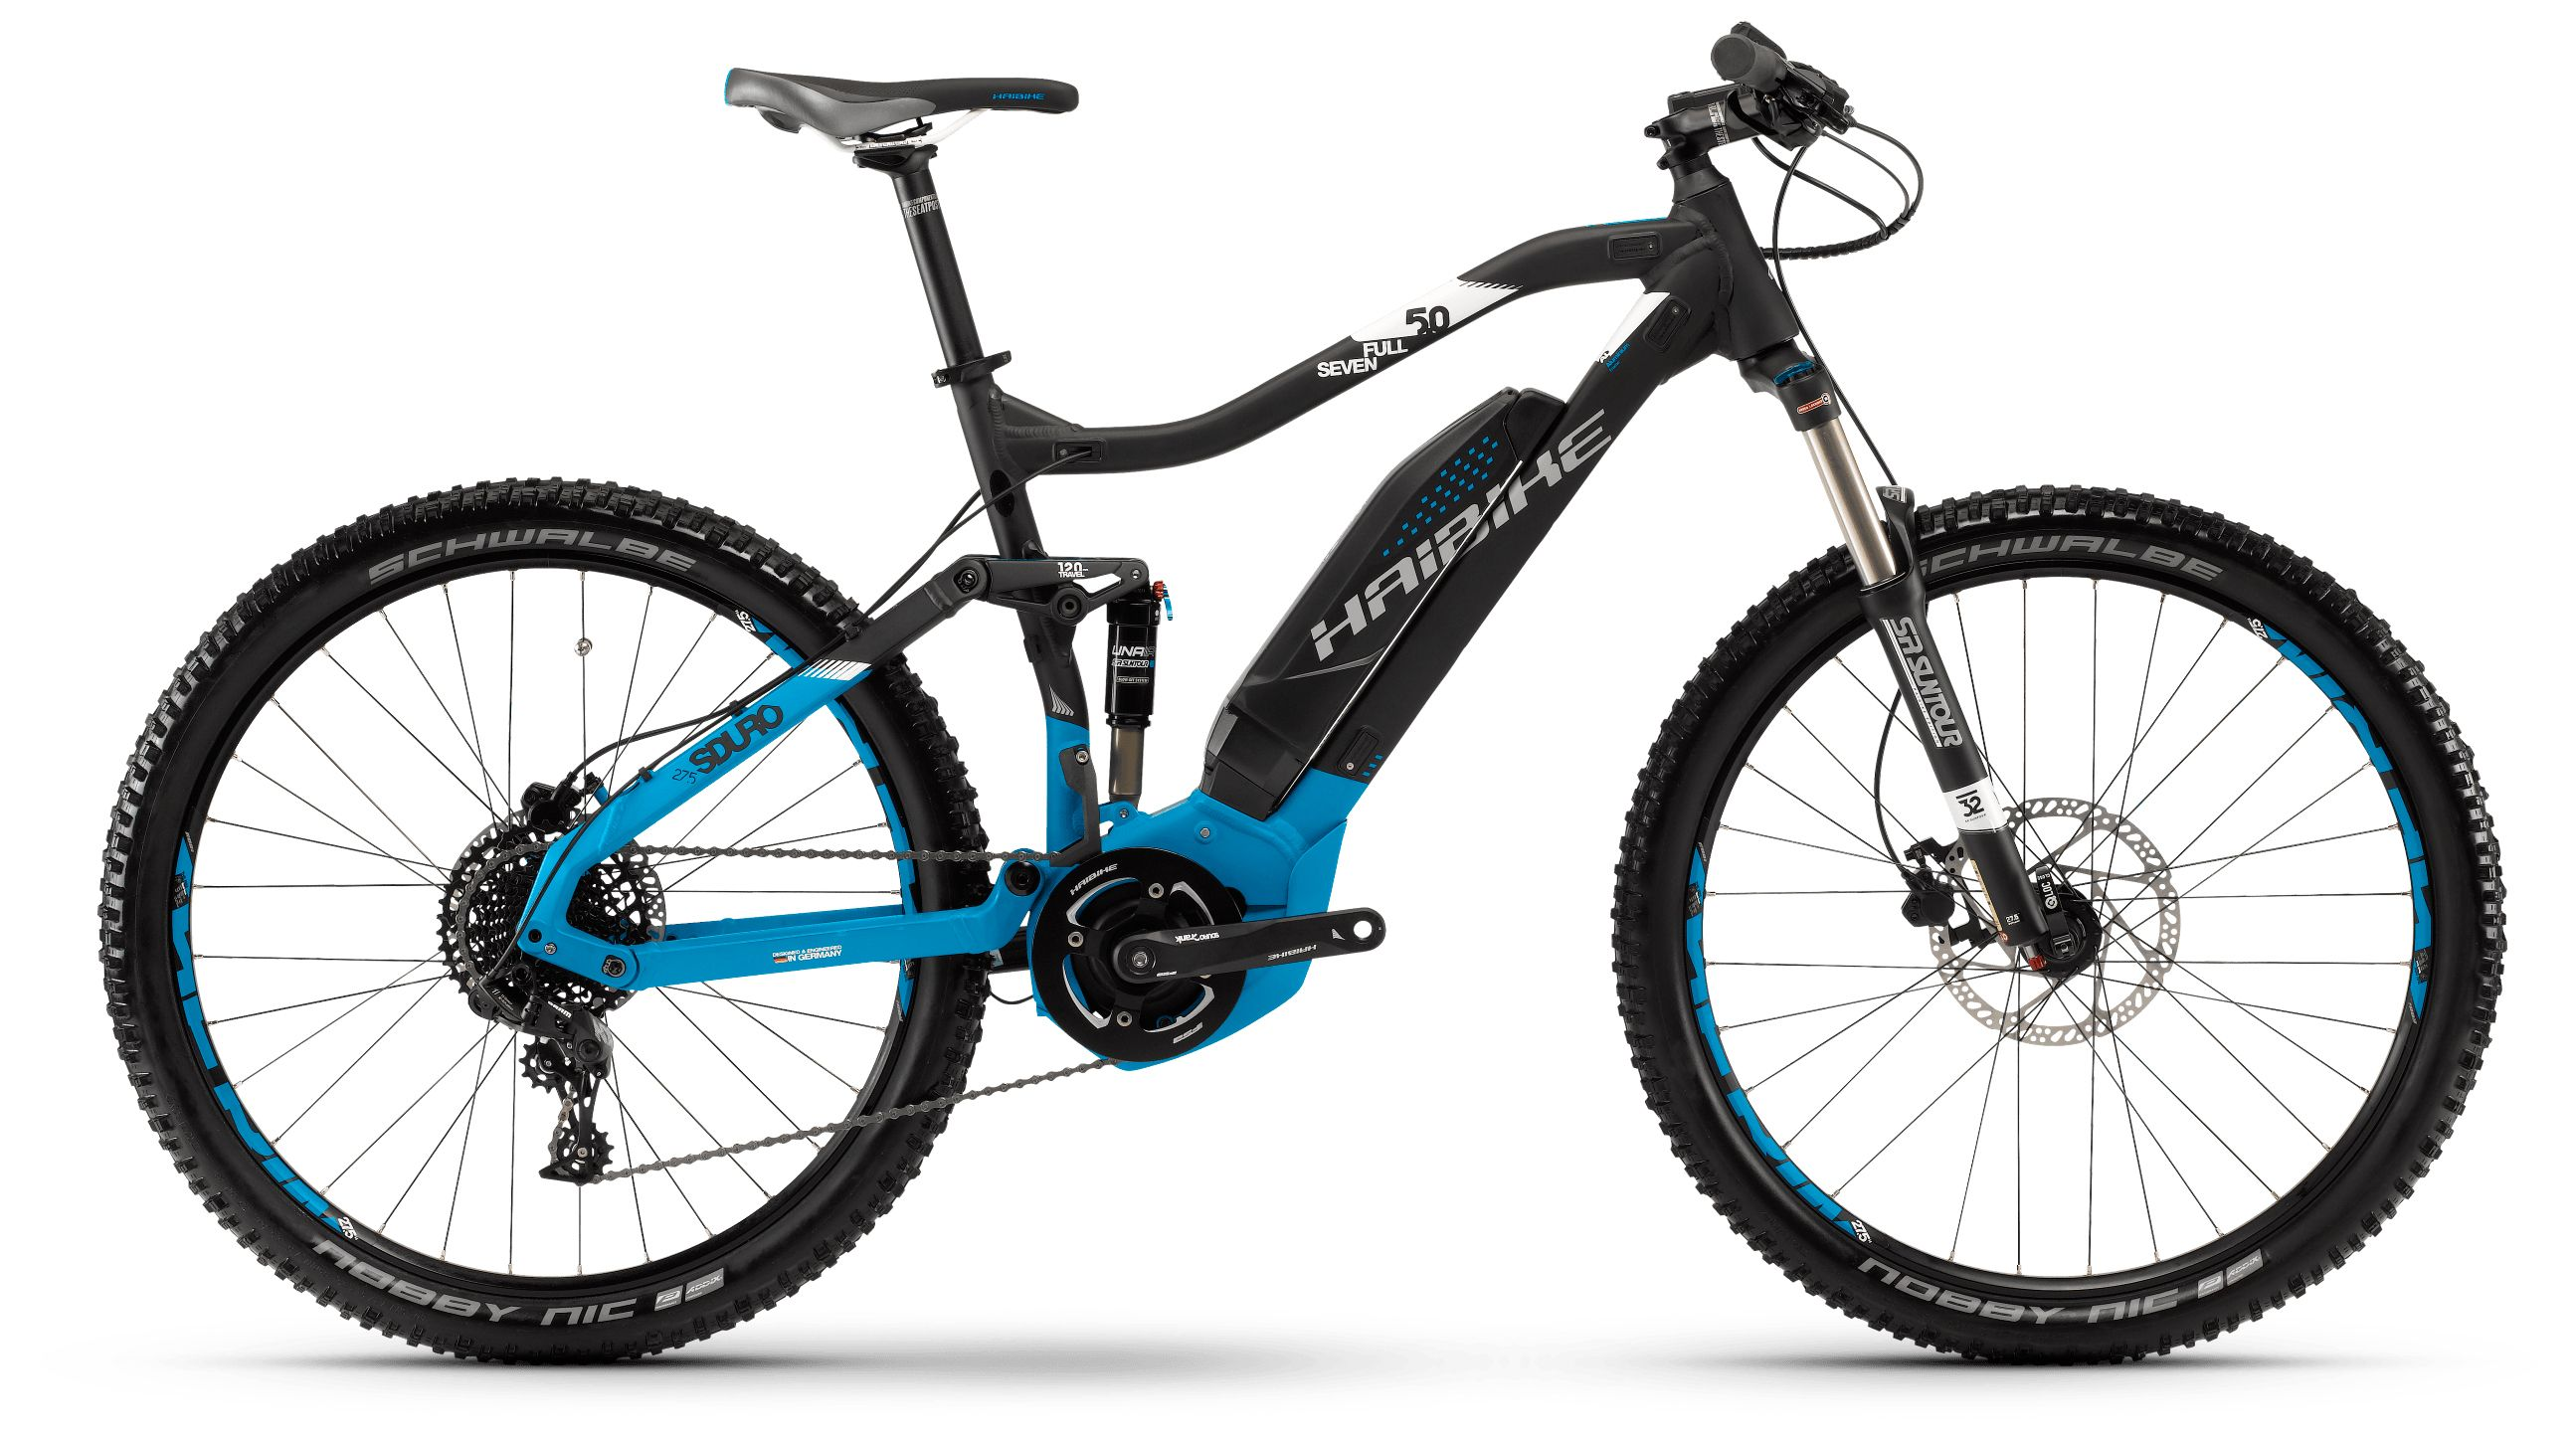 Велосипед Haibike Sduro FullSeven 5.0 400Wh 11s NX 2018 велосипед haibike sduro trekking 4 0 he 400wh 10s deore 2018